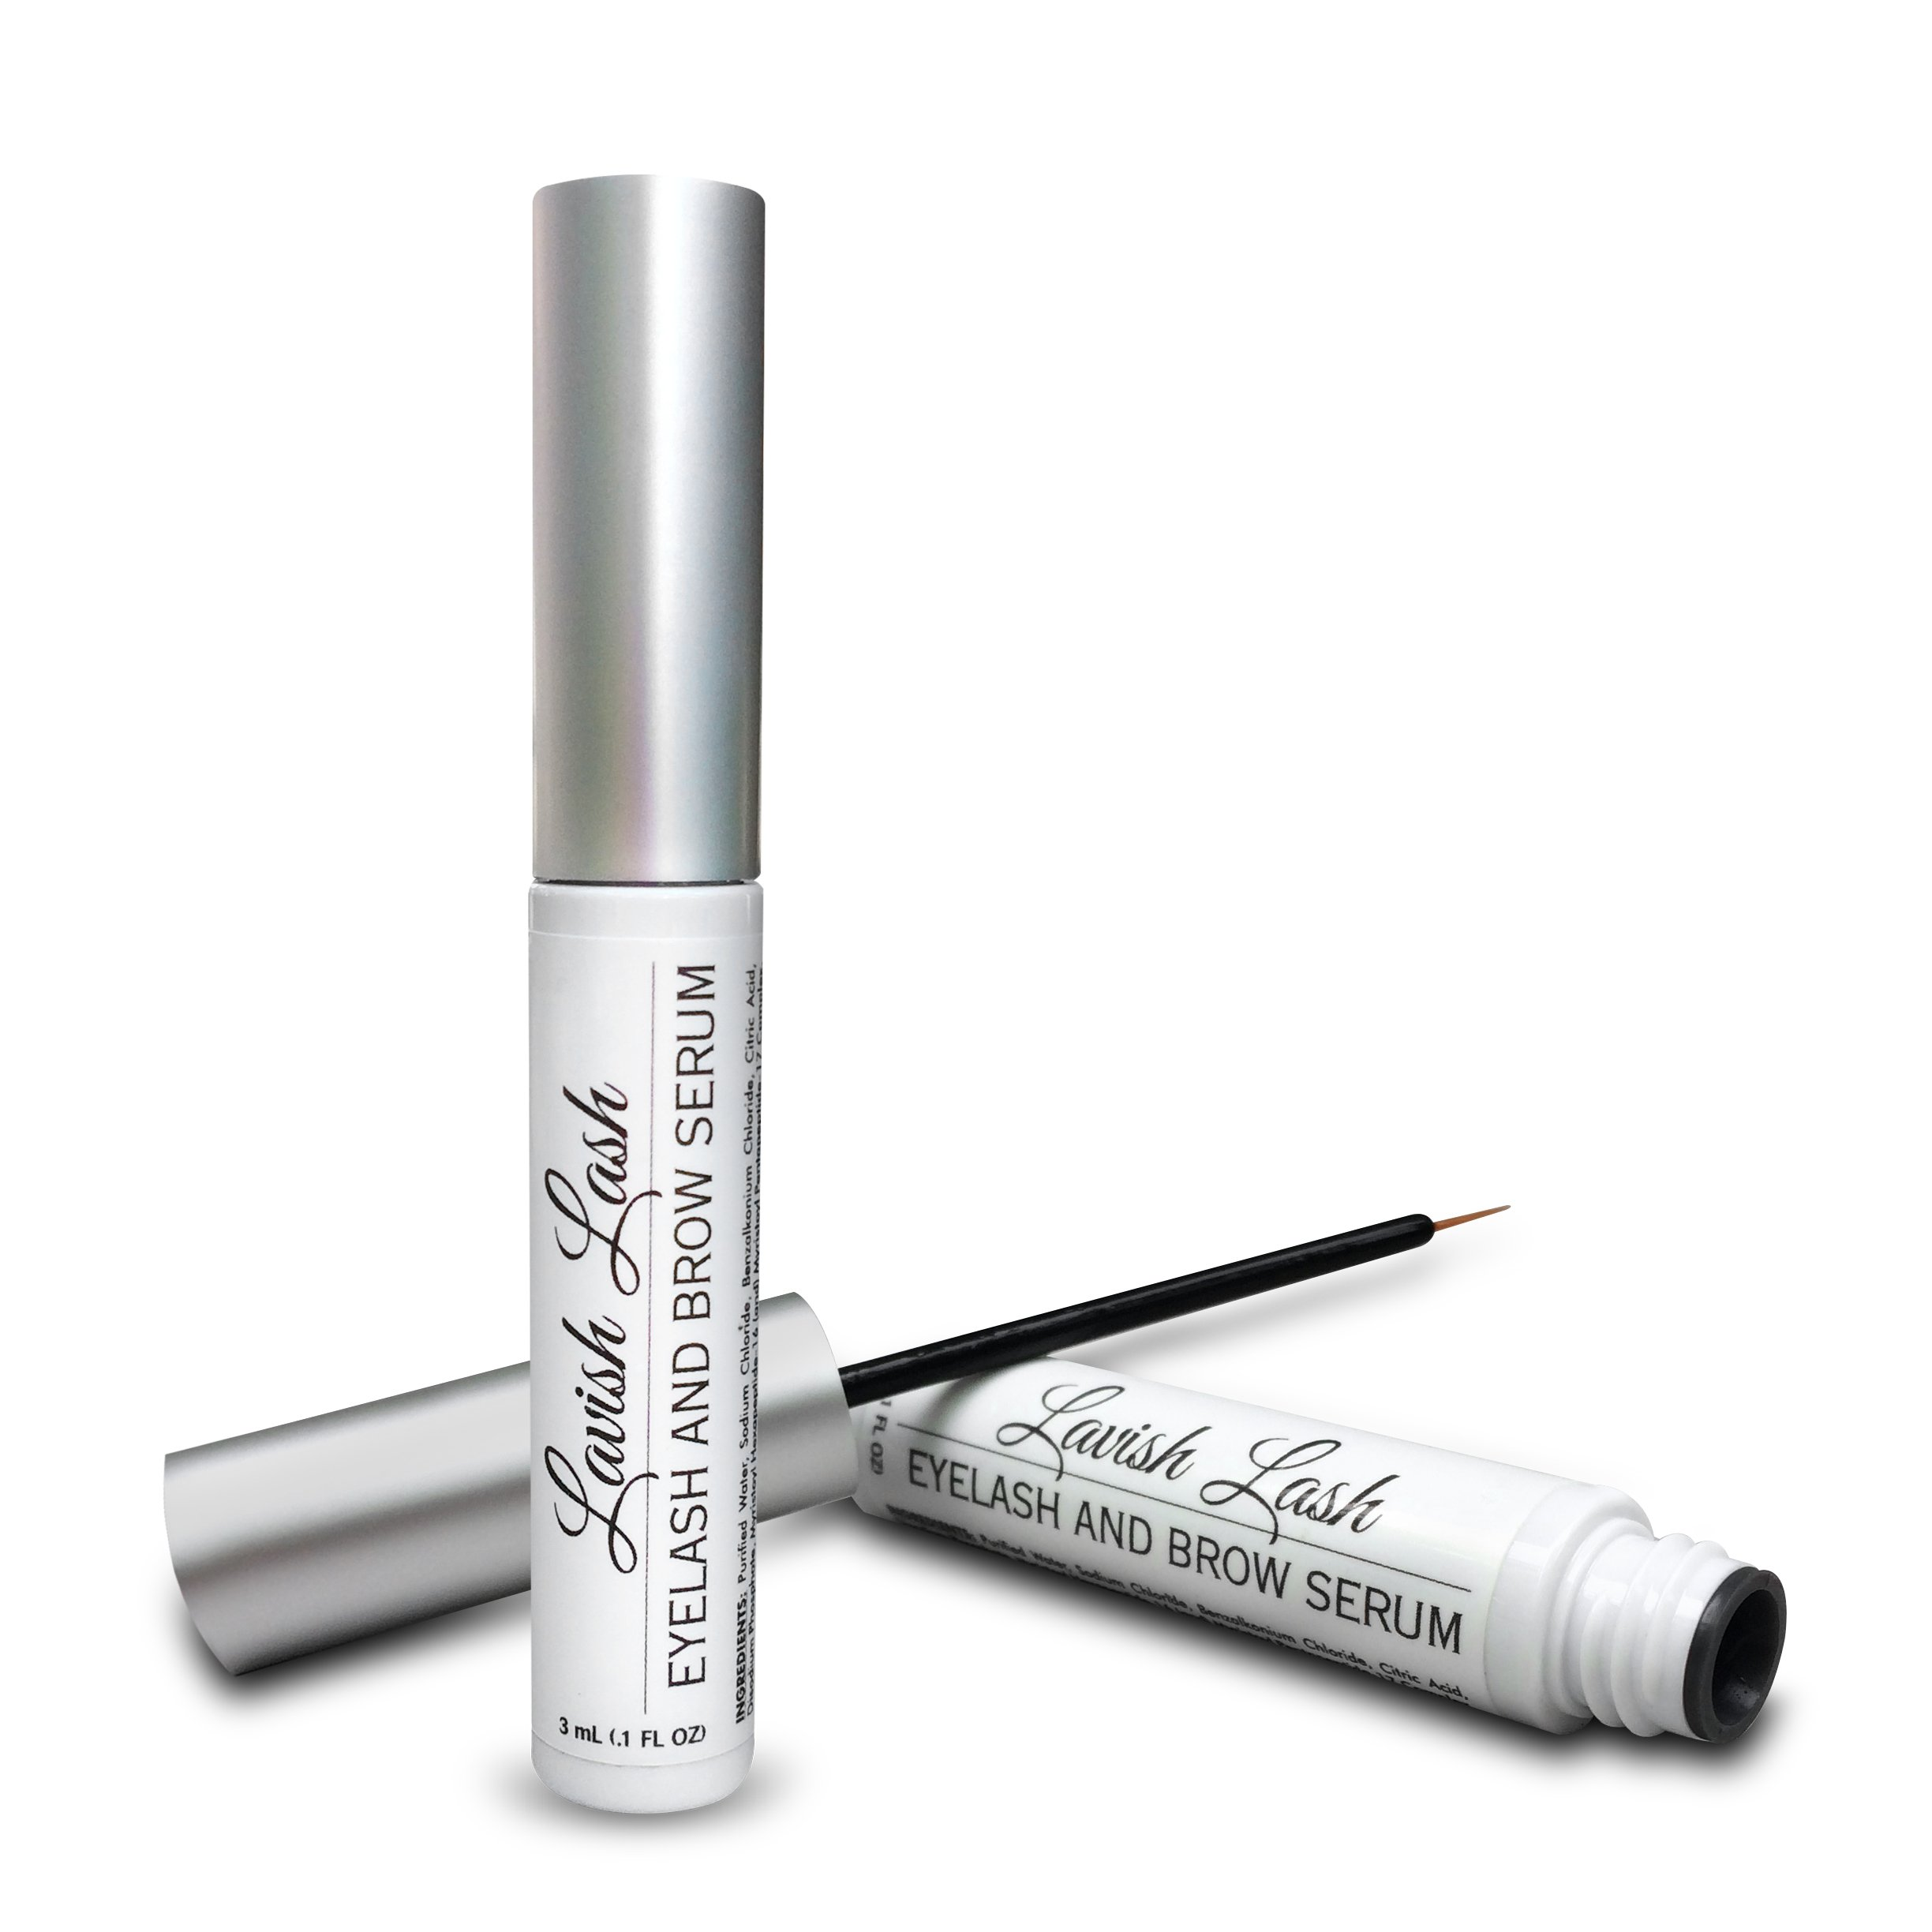 Pronexa Hairgenics Lavish Lash - Eyelash Growth Enhancer & Brow Serum for Long, Luscious Lashes